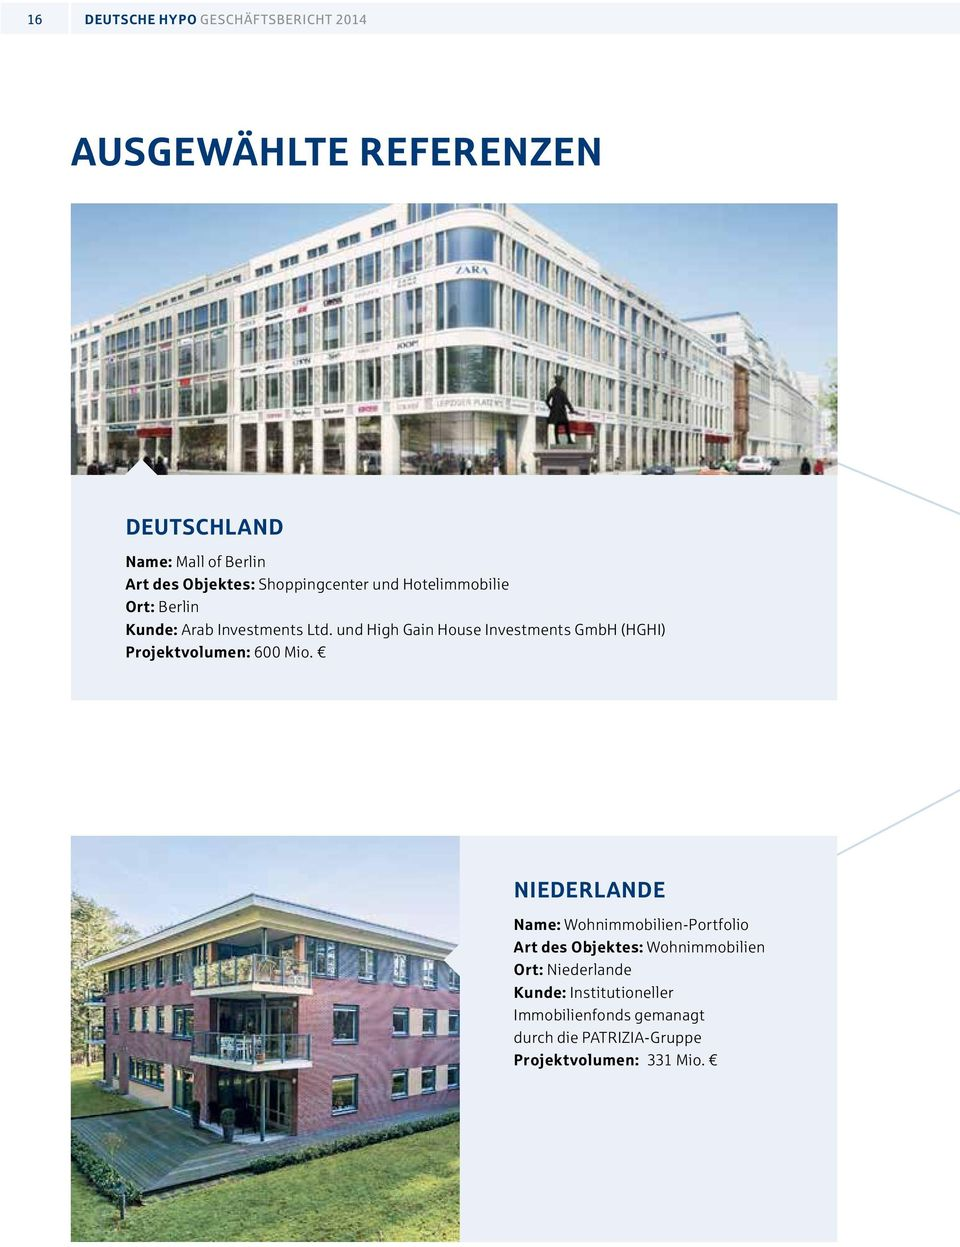 und High Gain House Investments GmbH (HGHI) Projektvolumen: 6 Mio.